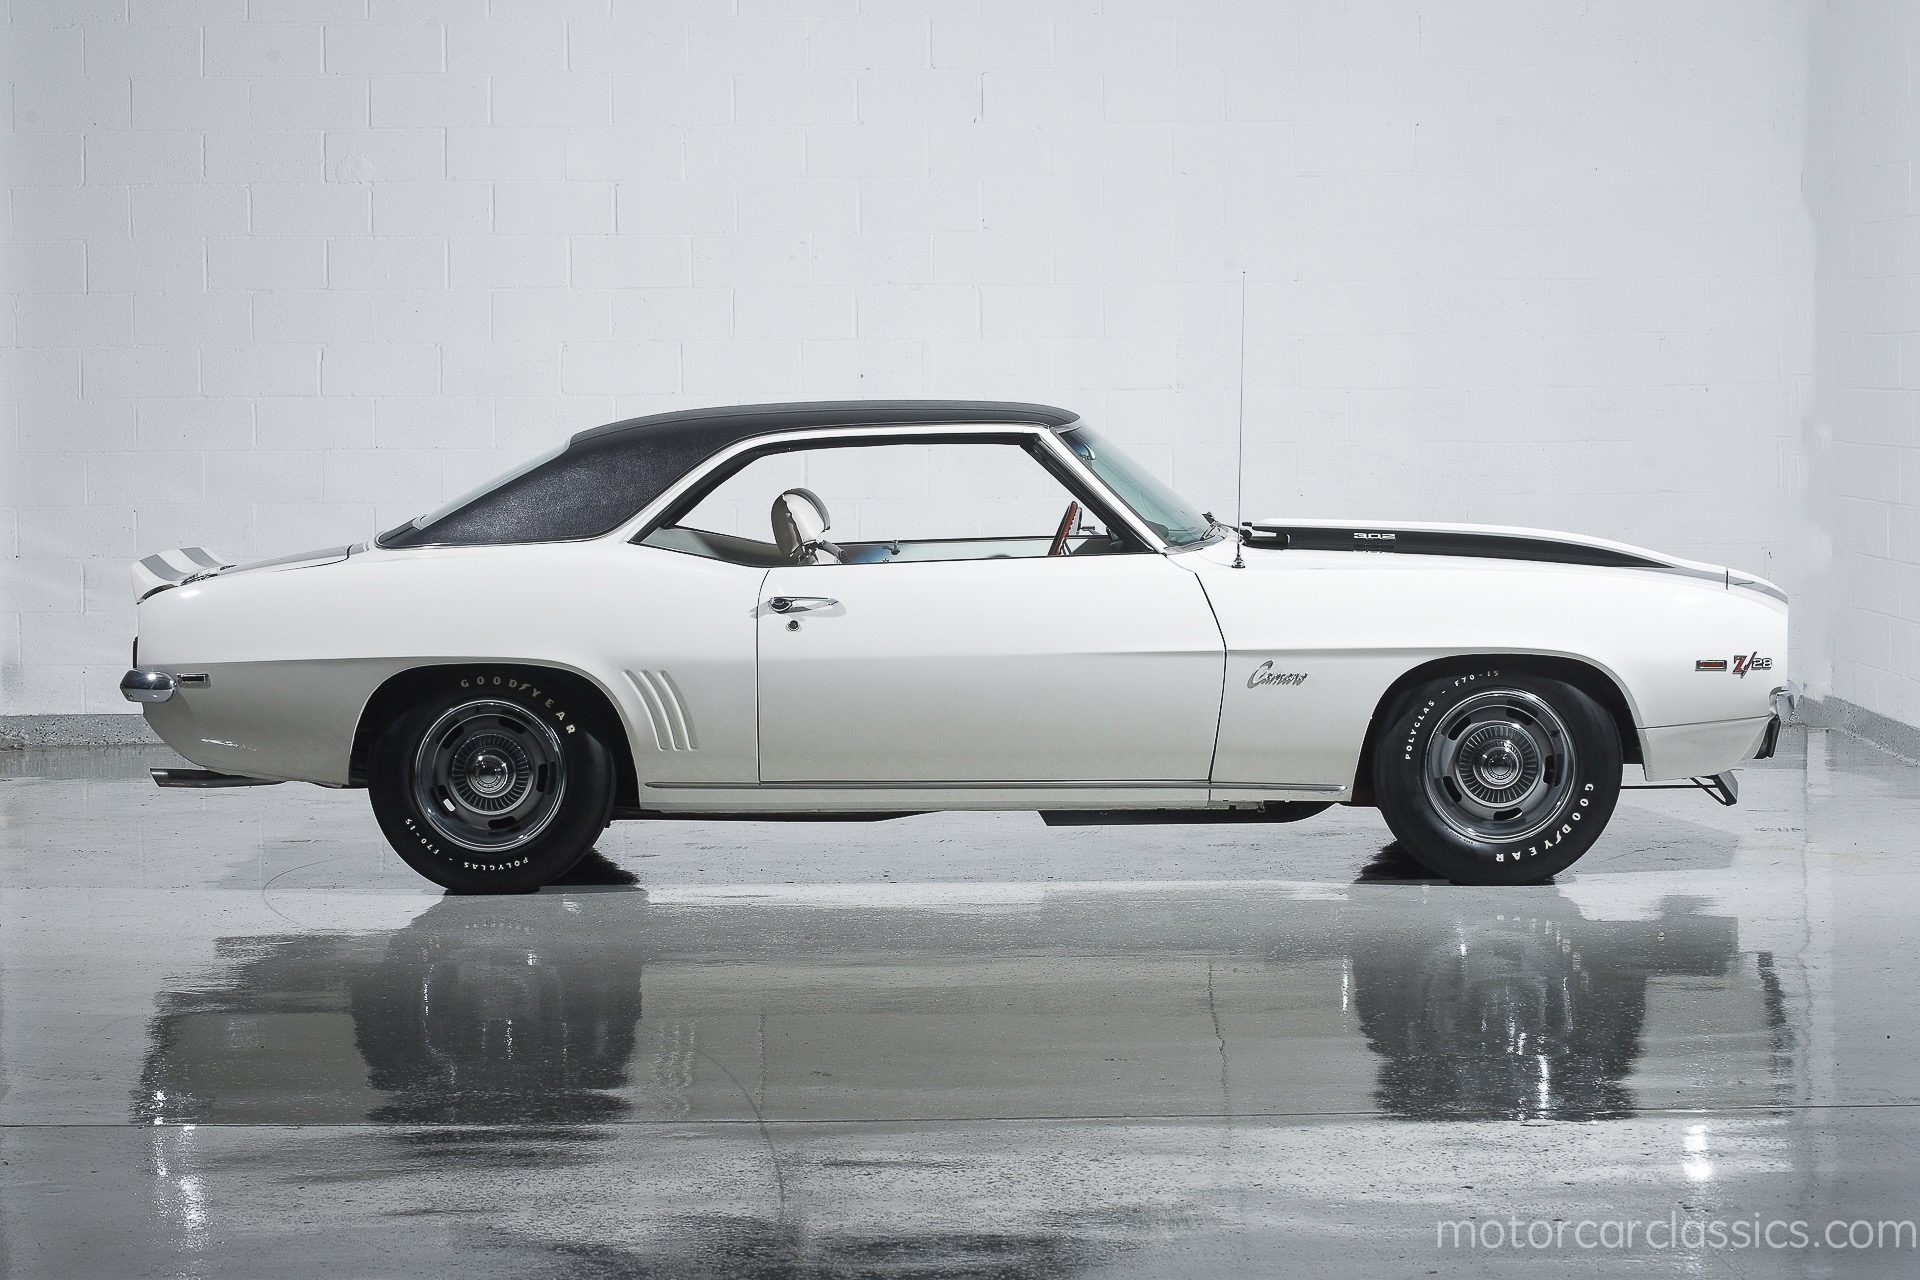 Used 1969 Chevrolet Camaro Z28 For Sale ($64,900) | Motorcar